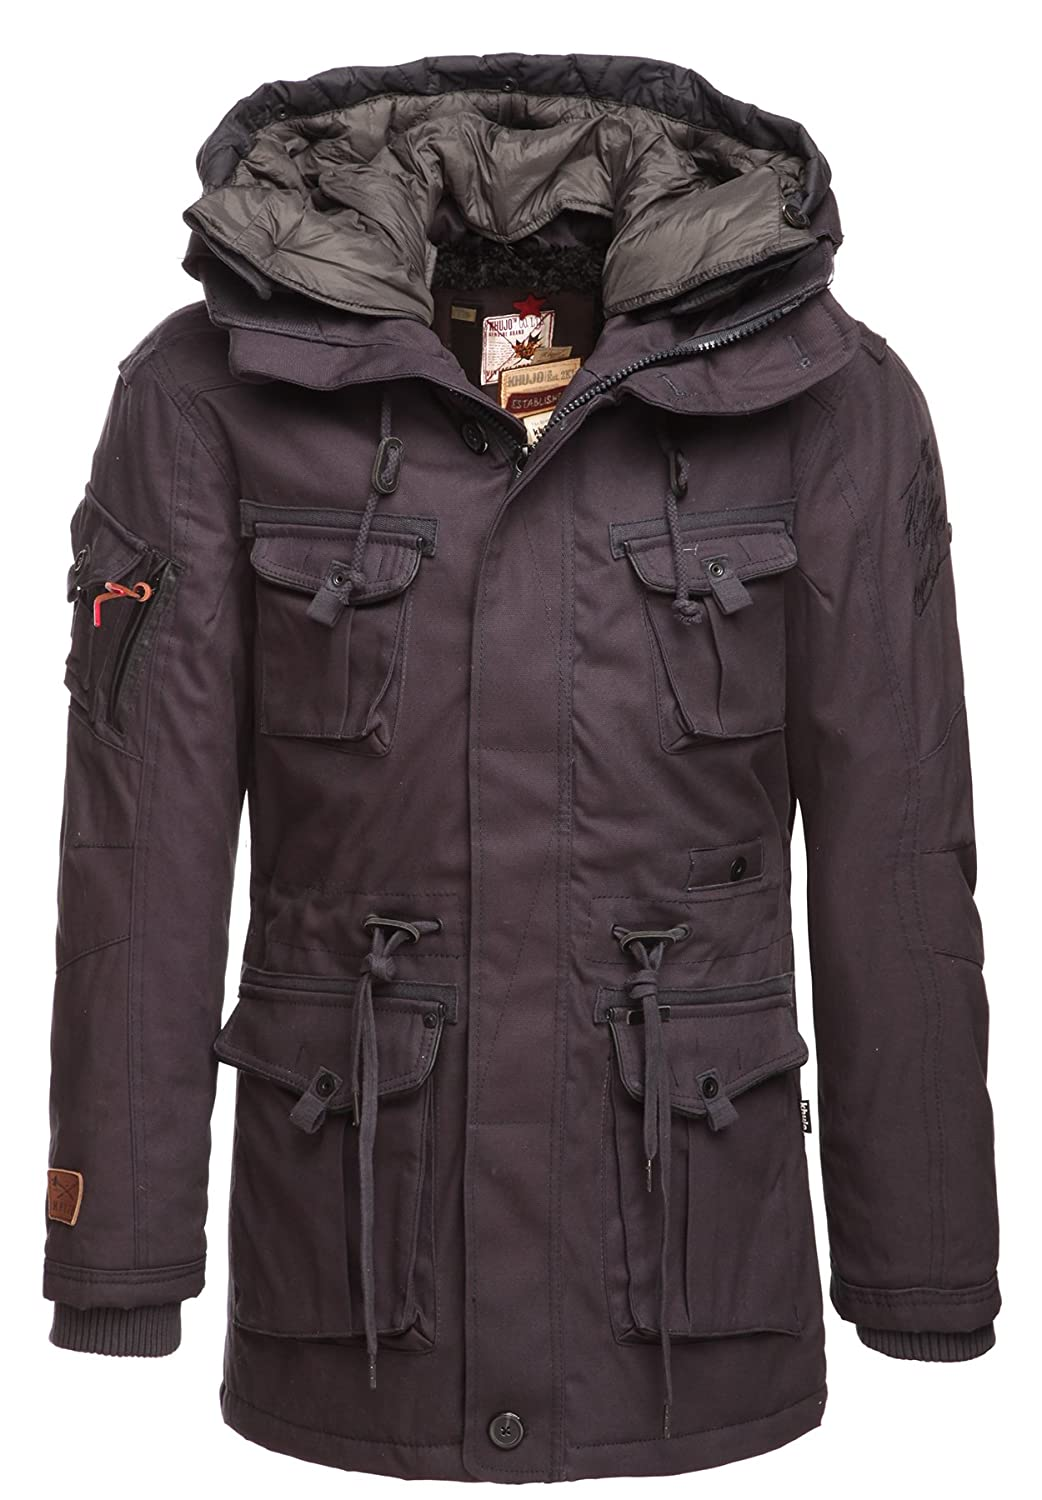 KHUJO Herren Winterjacke RHOMP WITH HOOD